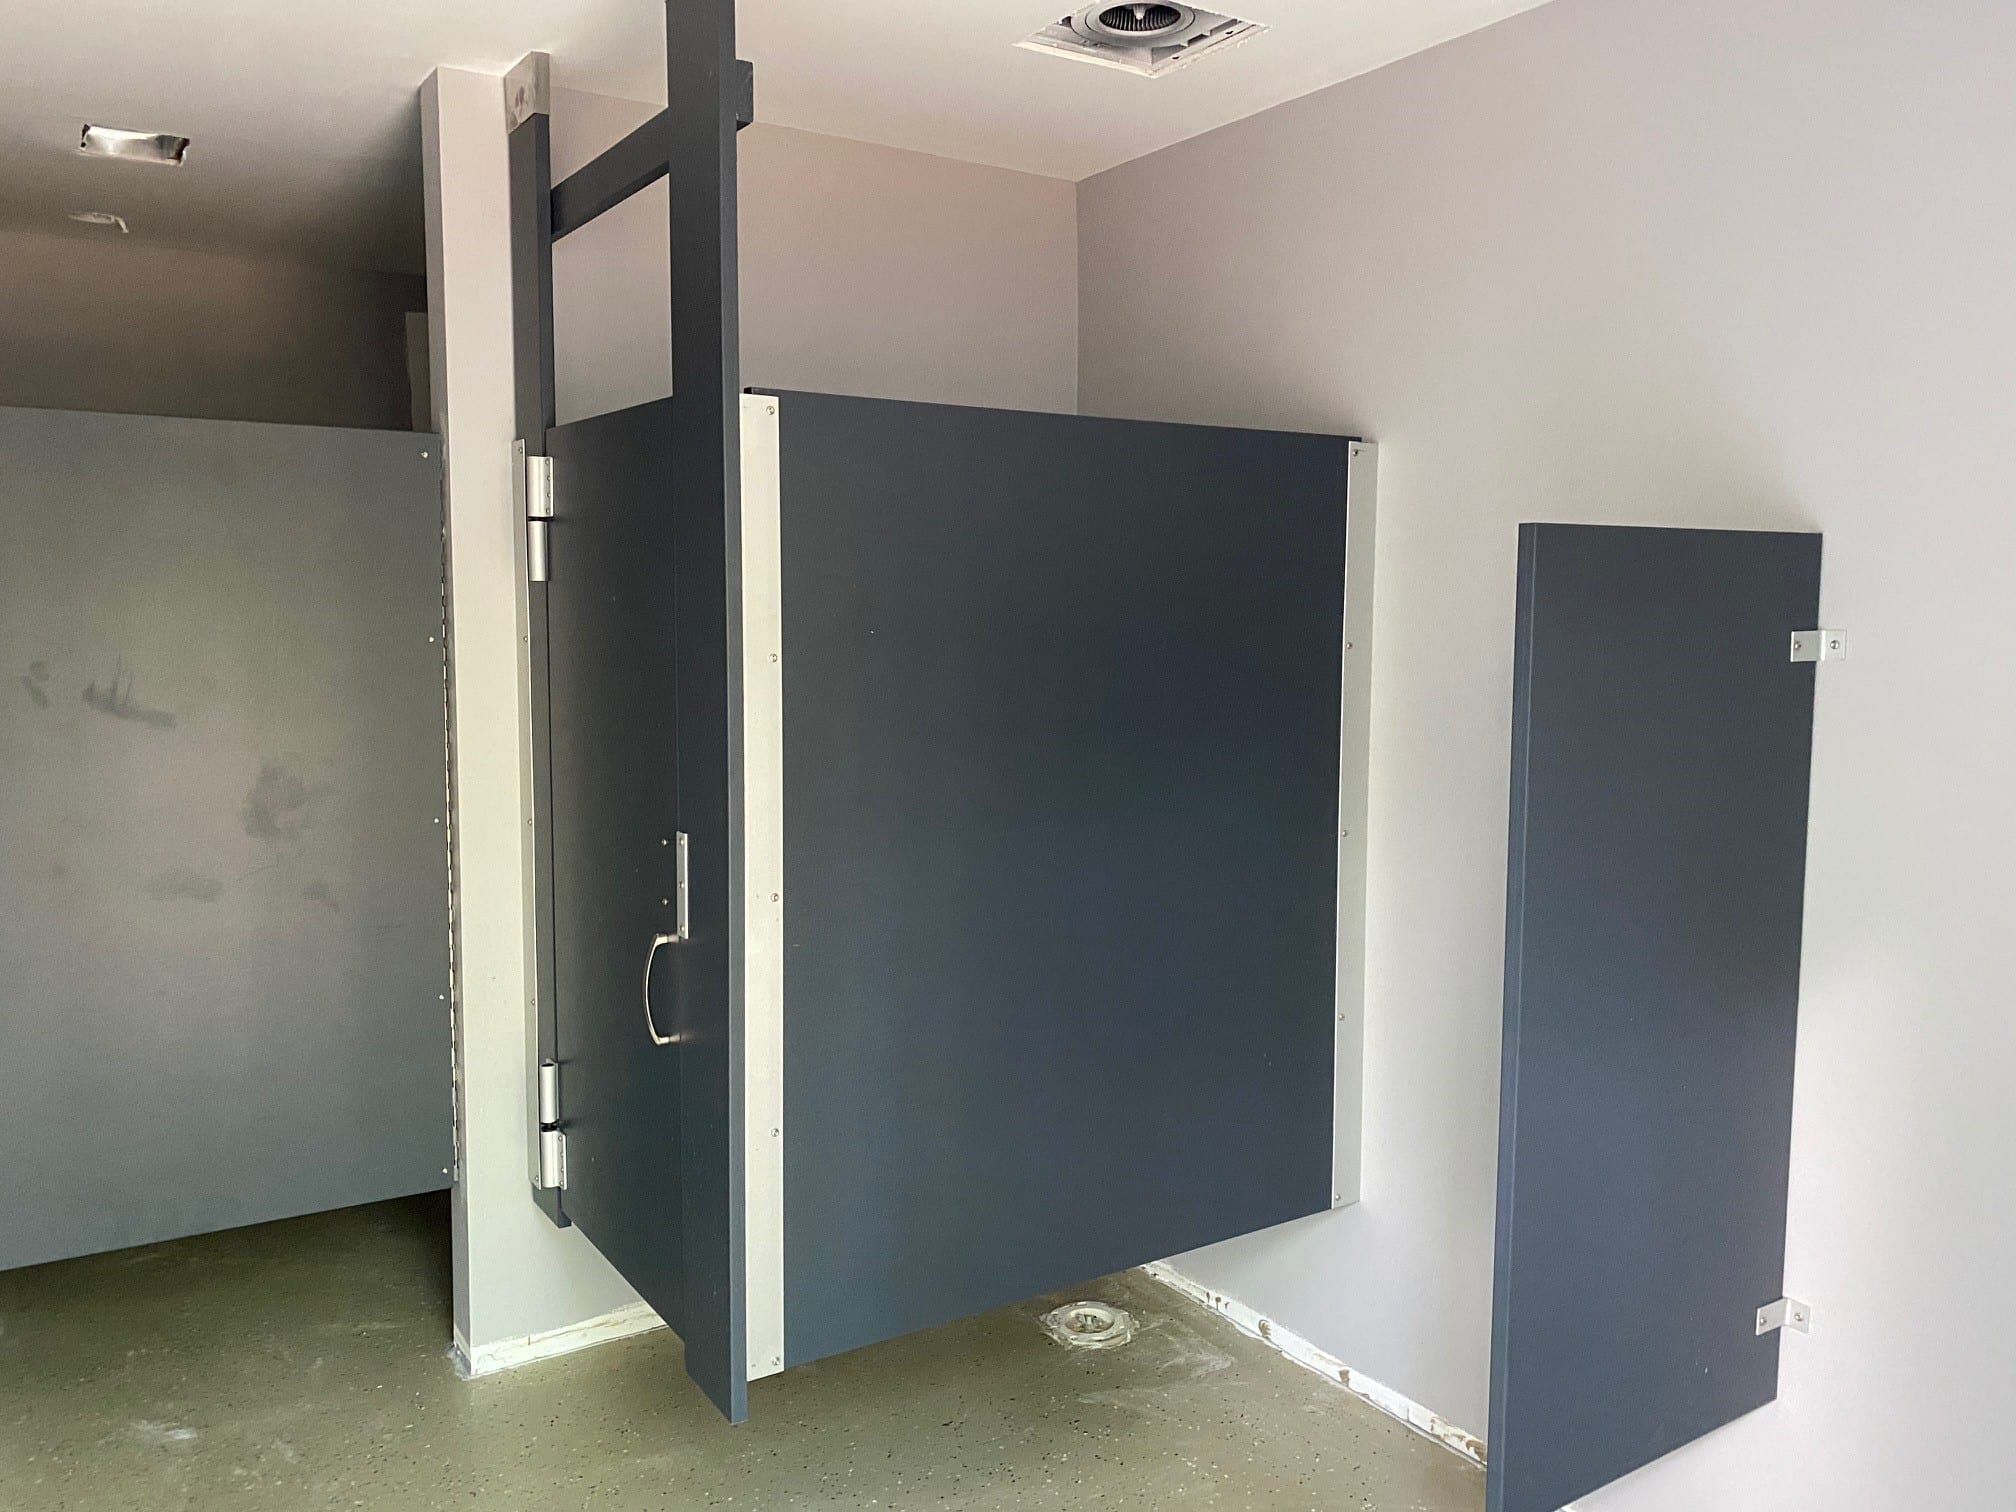 Toilet Partition Install